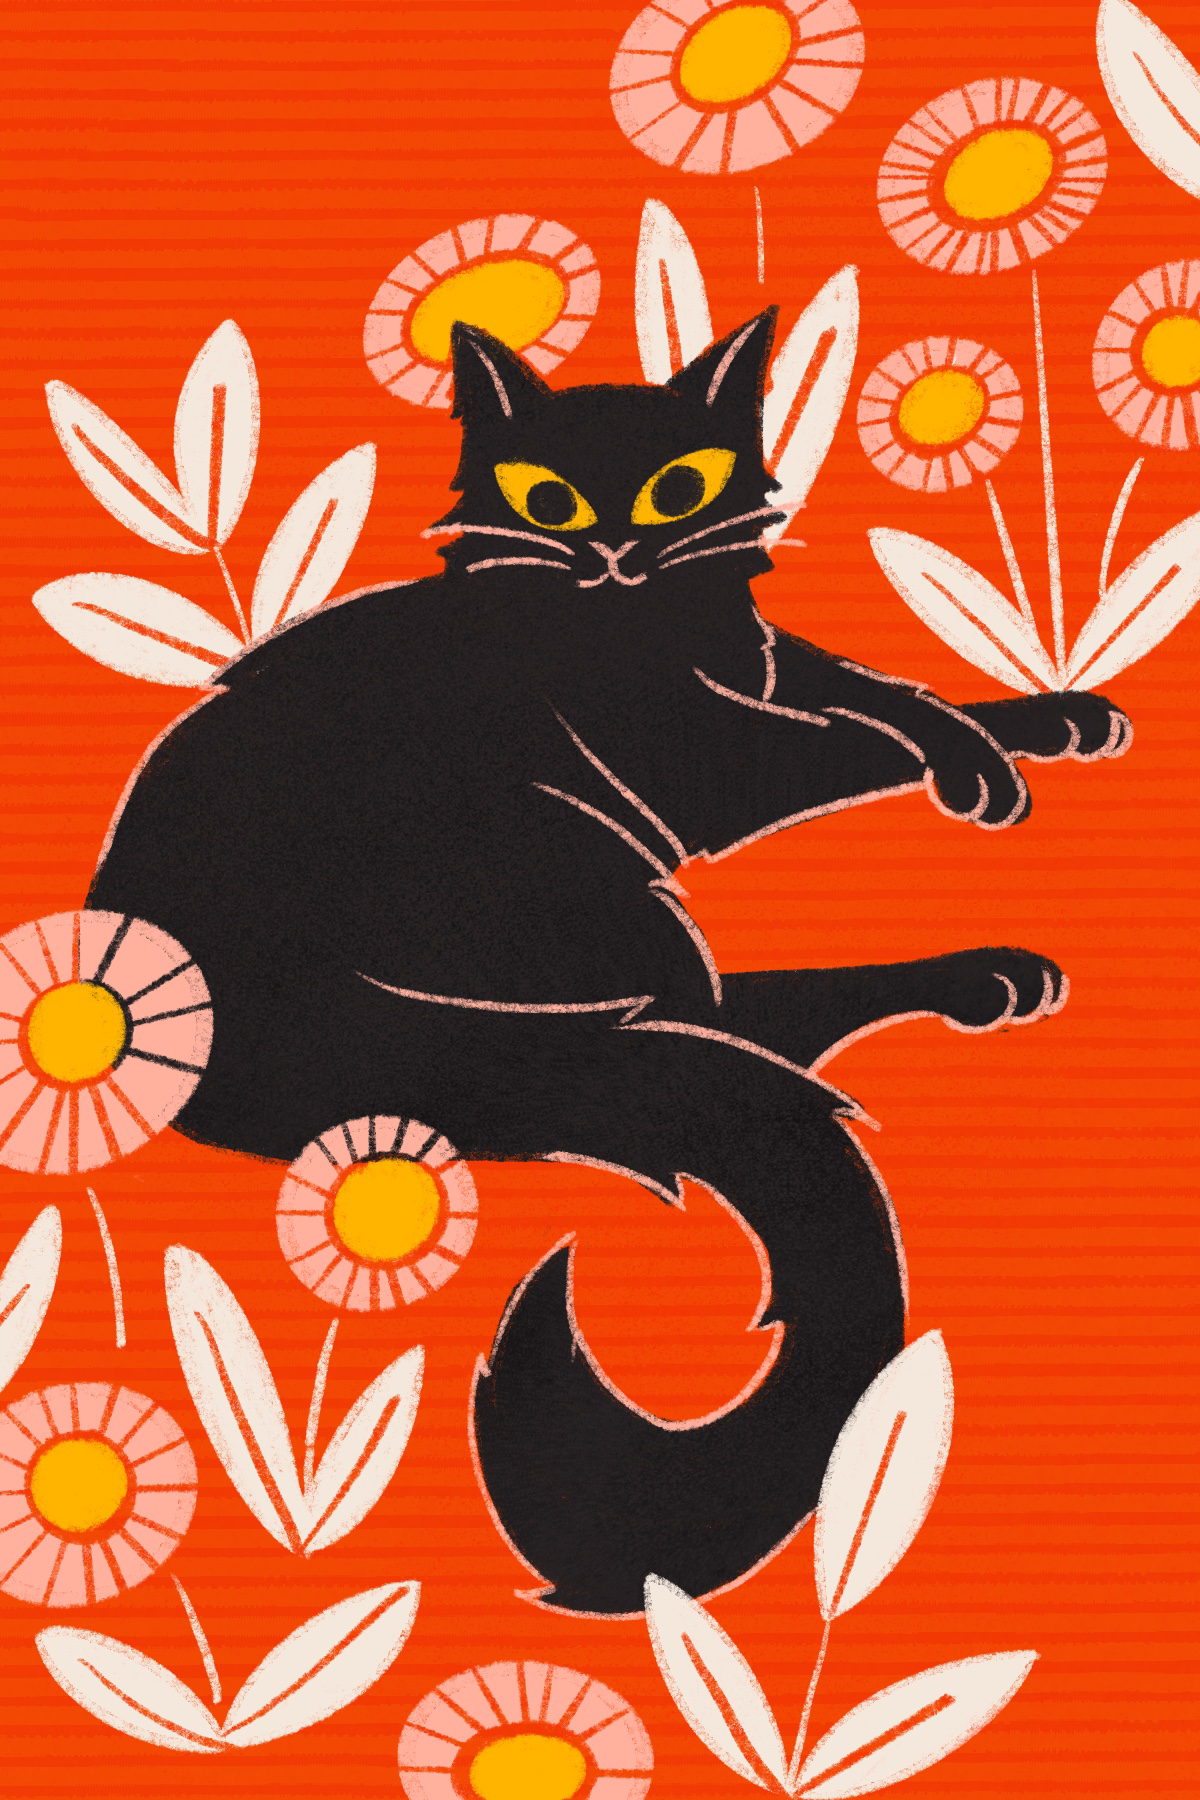 Black Cat cat floral drawing procreate illustration